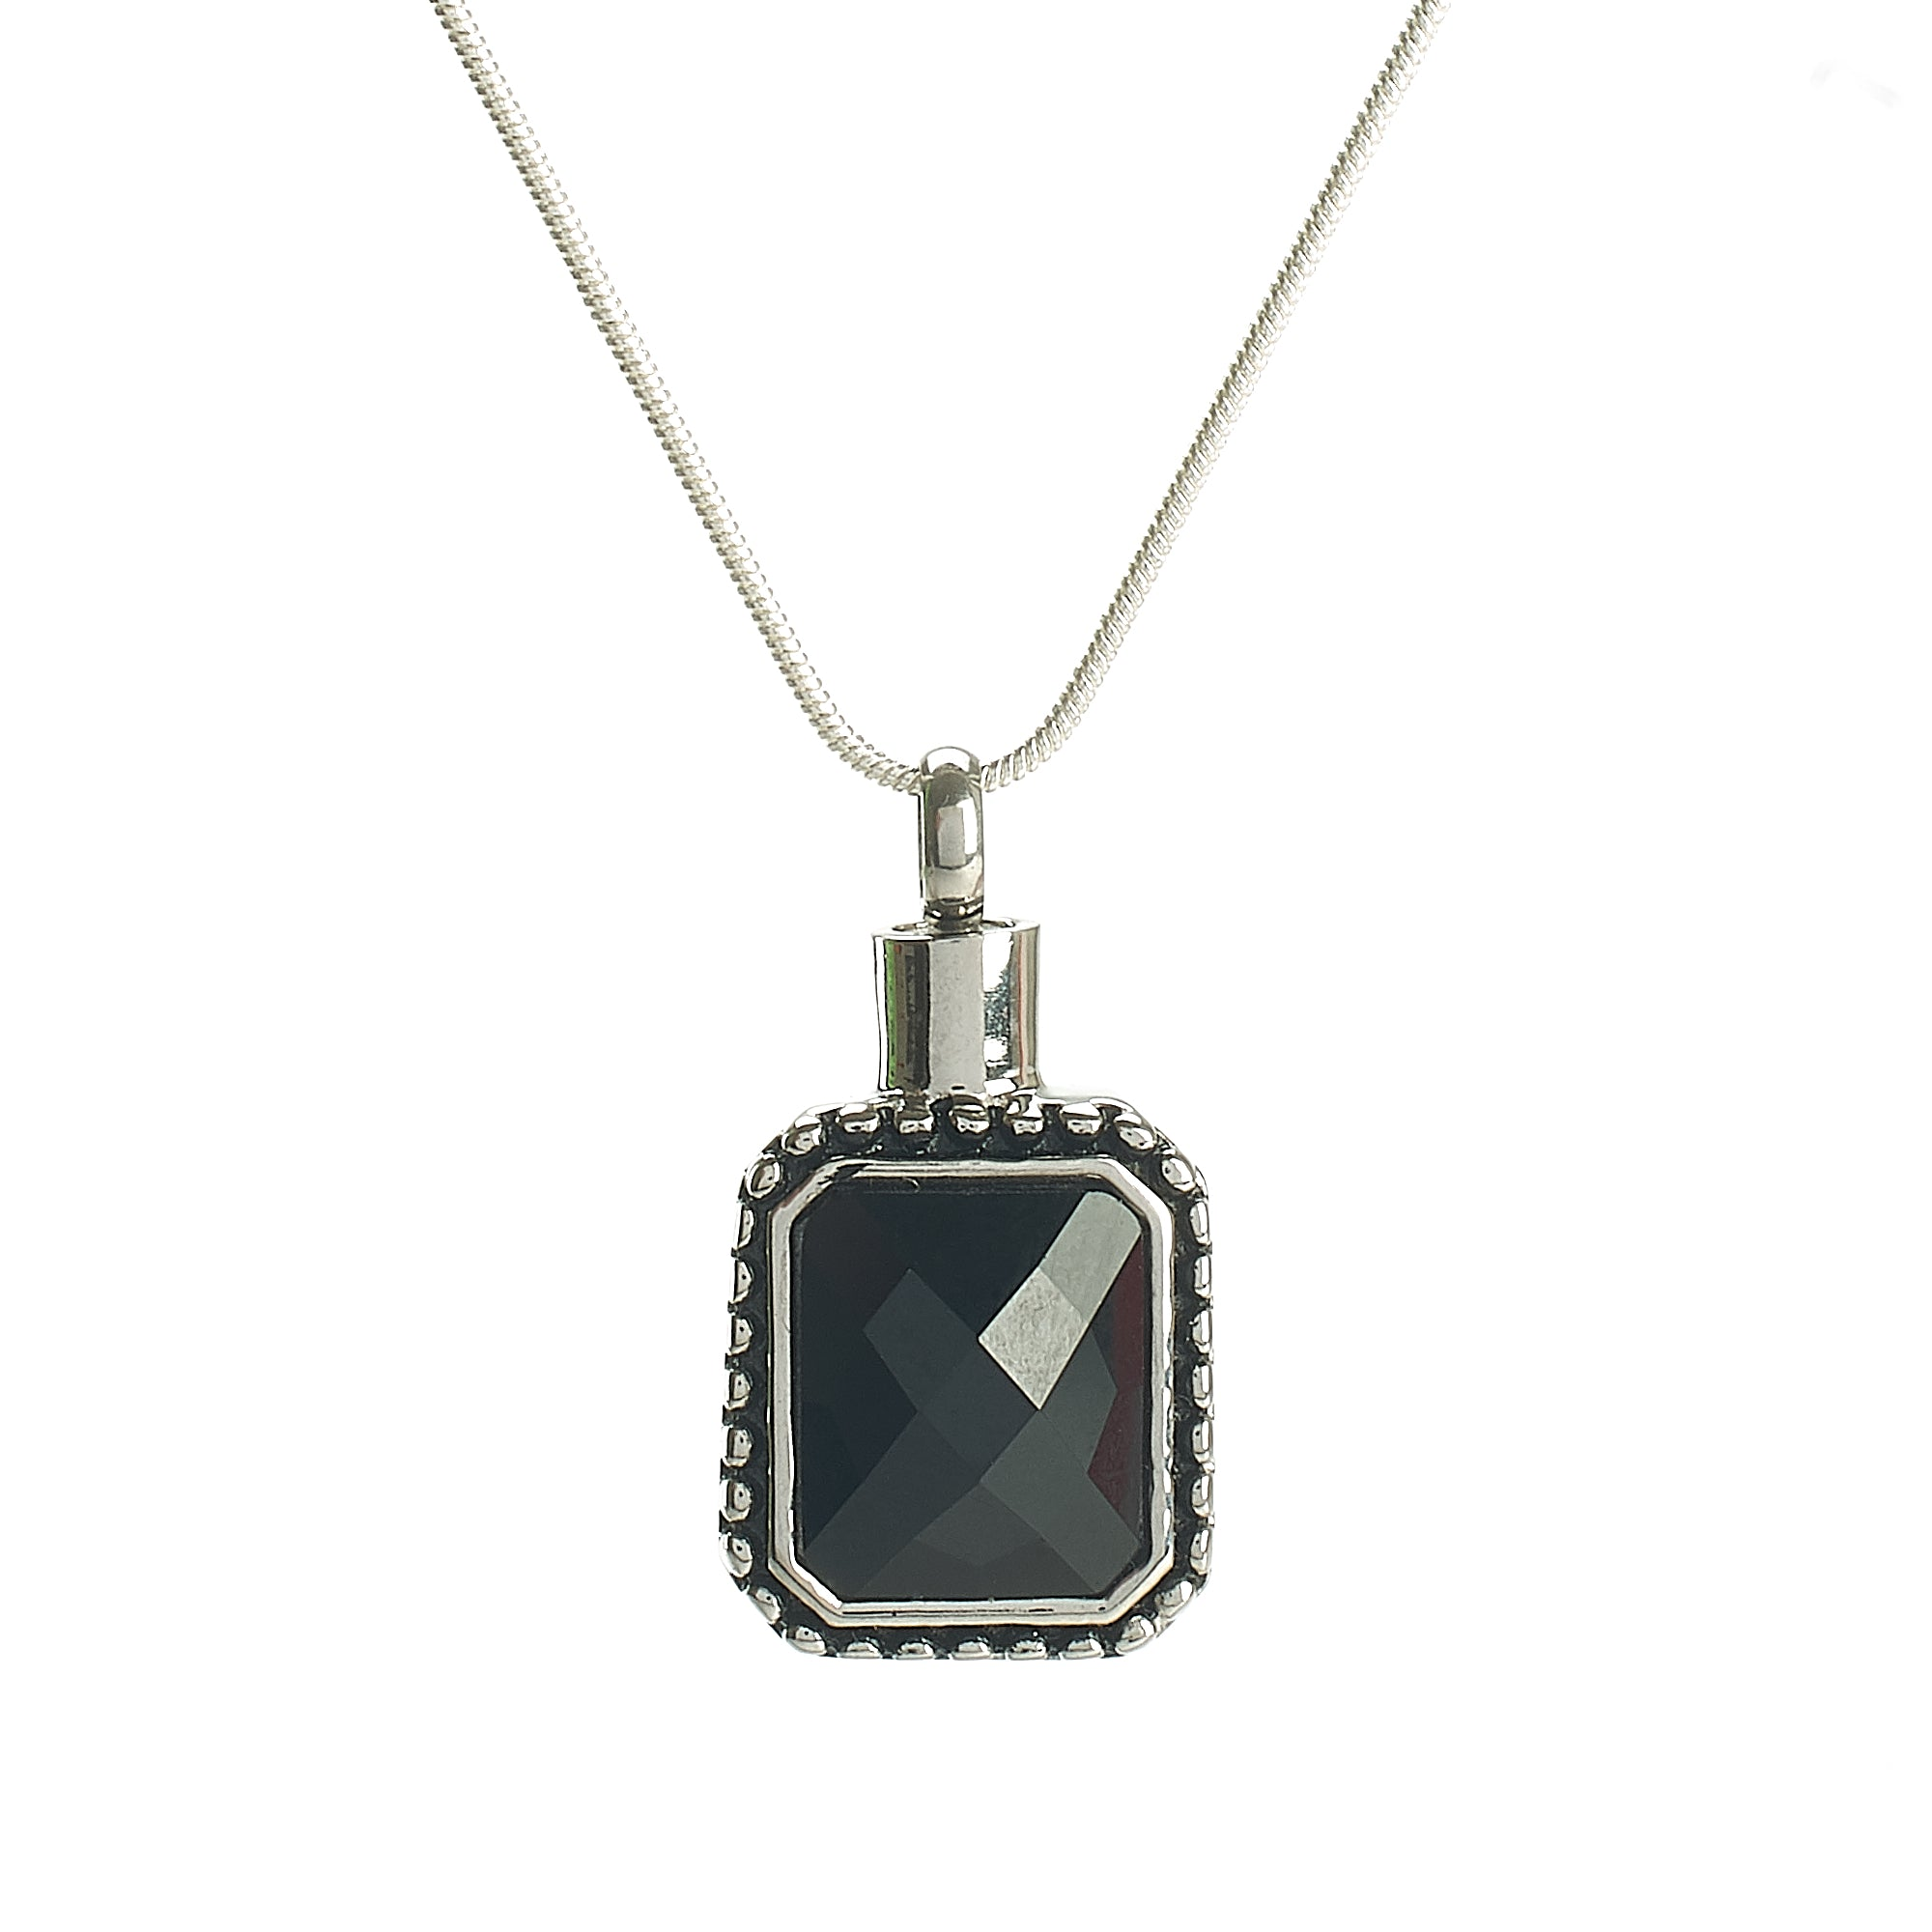 Cremation Pendant - Rectangle - Black Stone in Silver